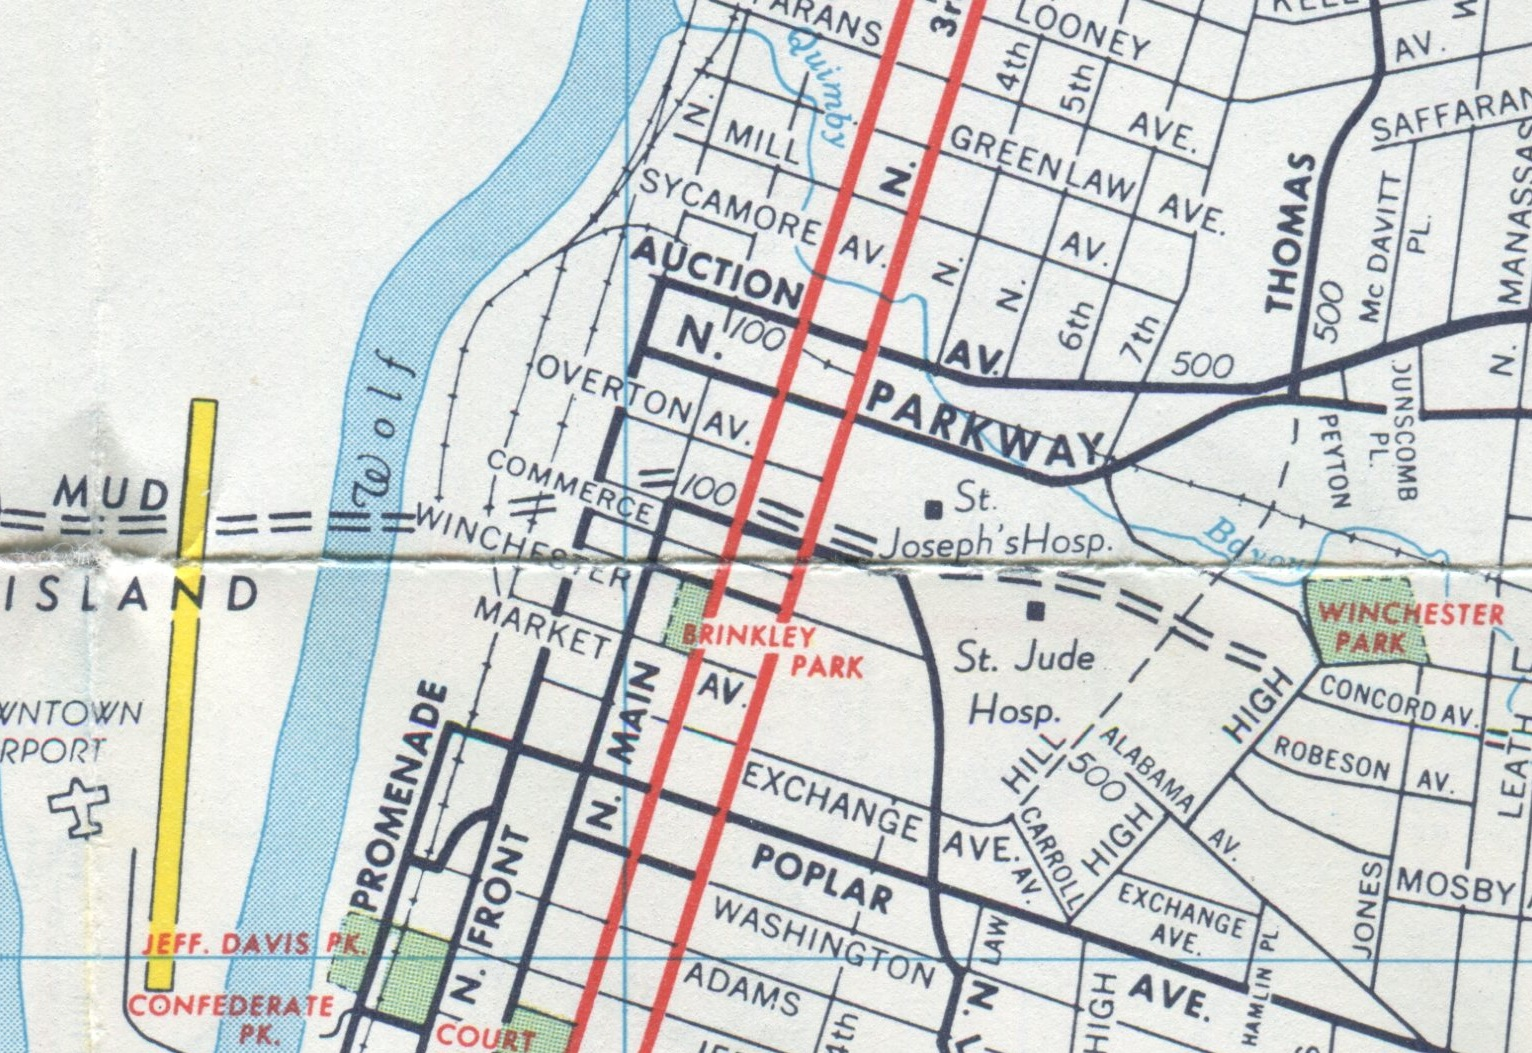 by the time this map was printed in 1964 things were changing dramatically in the neighborhood st jude hospital begun in 1962 has joined st joseph s